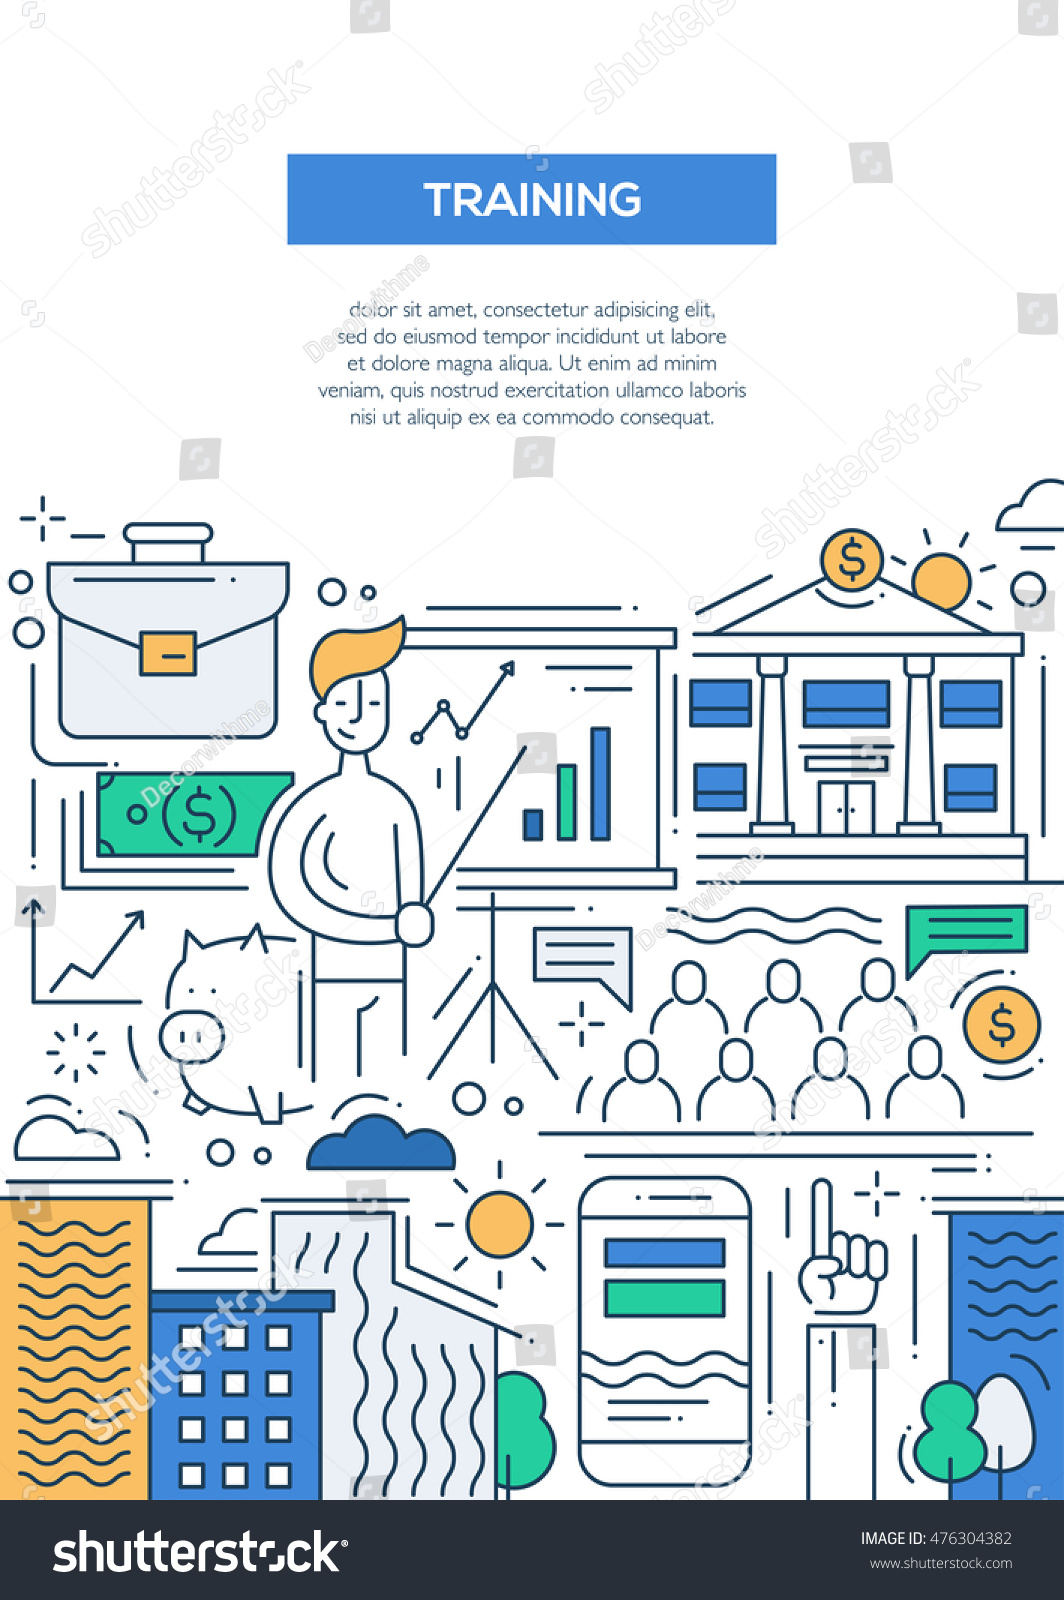 business training line design brochure poster stock illustration